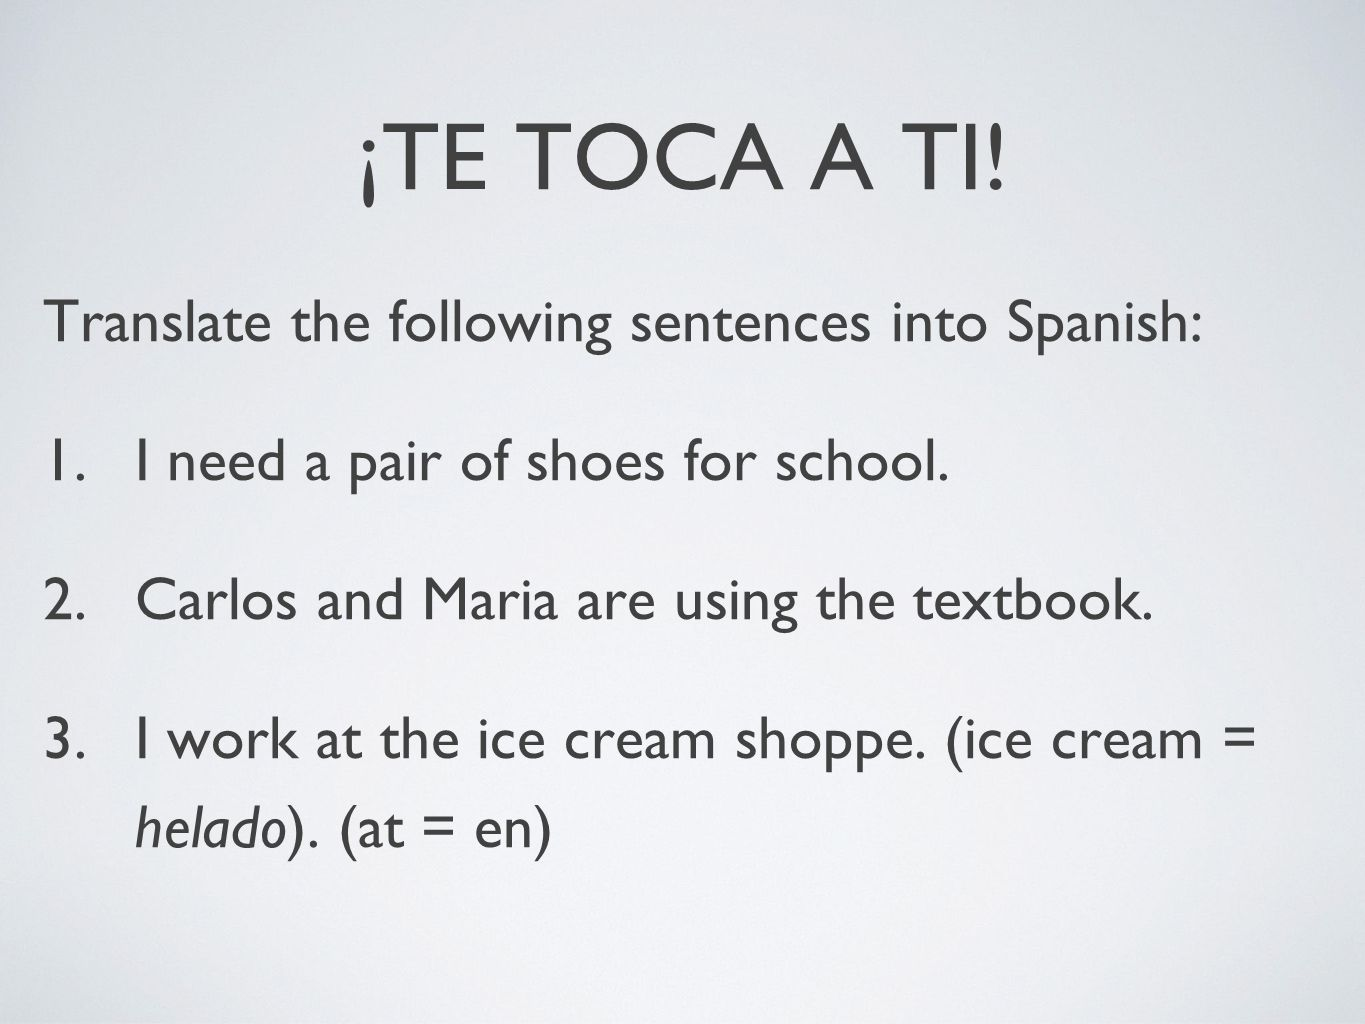 ¡TE TOCA A TI! Translate the following sentences into Spanish: